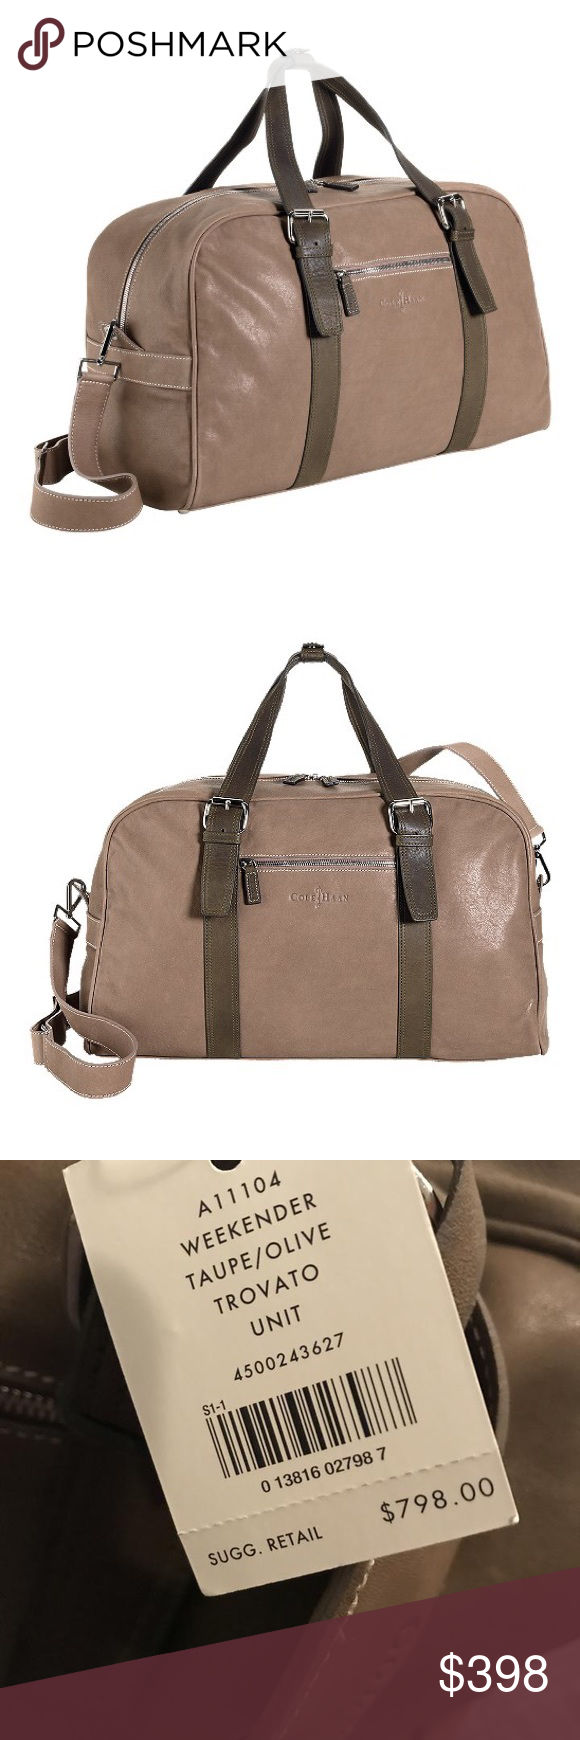 "a46722a9537 🆕Cole Haan Trovato Leather Weekender/Travel Bag Taupe/Olive, 24"" L x 10"" W  x 12"" H. Gold hardware. Lock has no key. Cole Haan Bags Luggage & Travel  Bags"